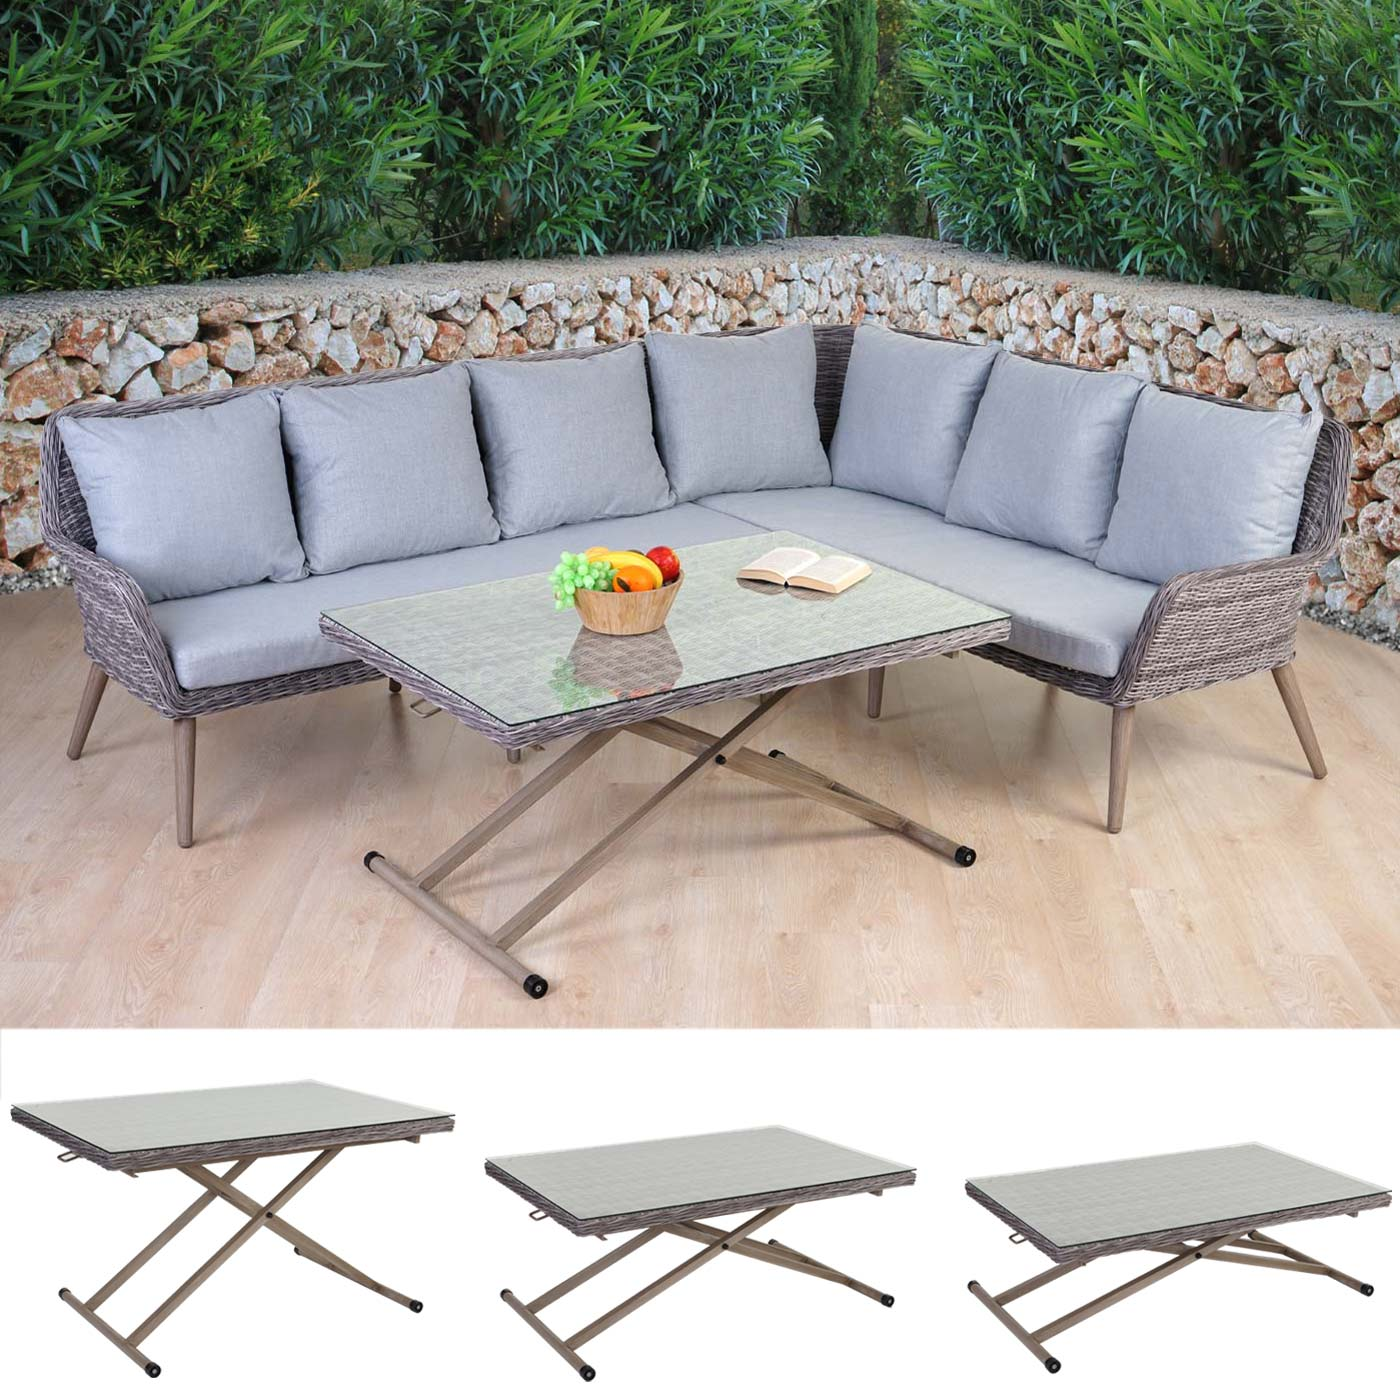 Garten garnituren sofa aluminium garnituren teuer - Lounge garnitur garten ...